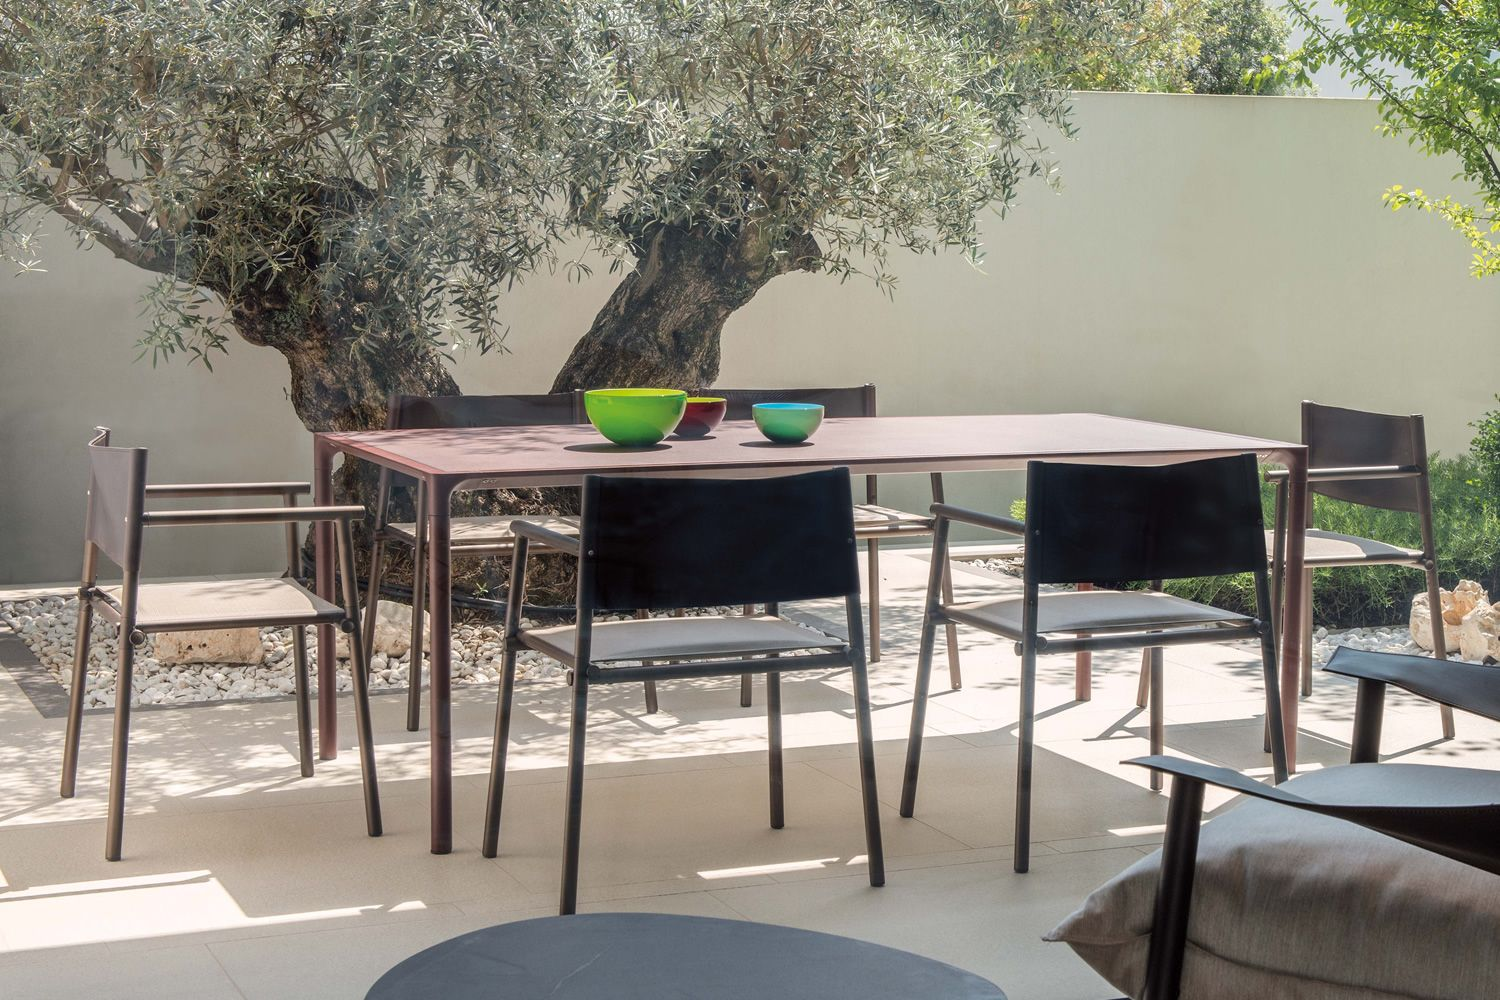 India brown varnished metal armchairs, matching with Terramare 738 table